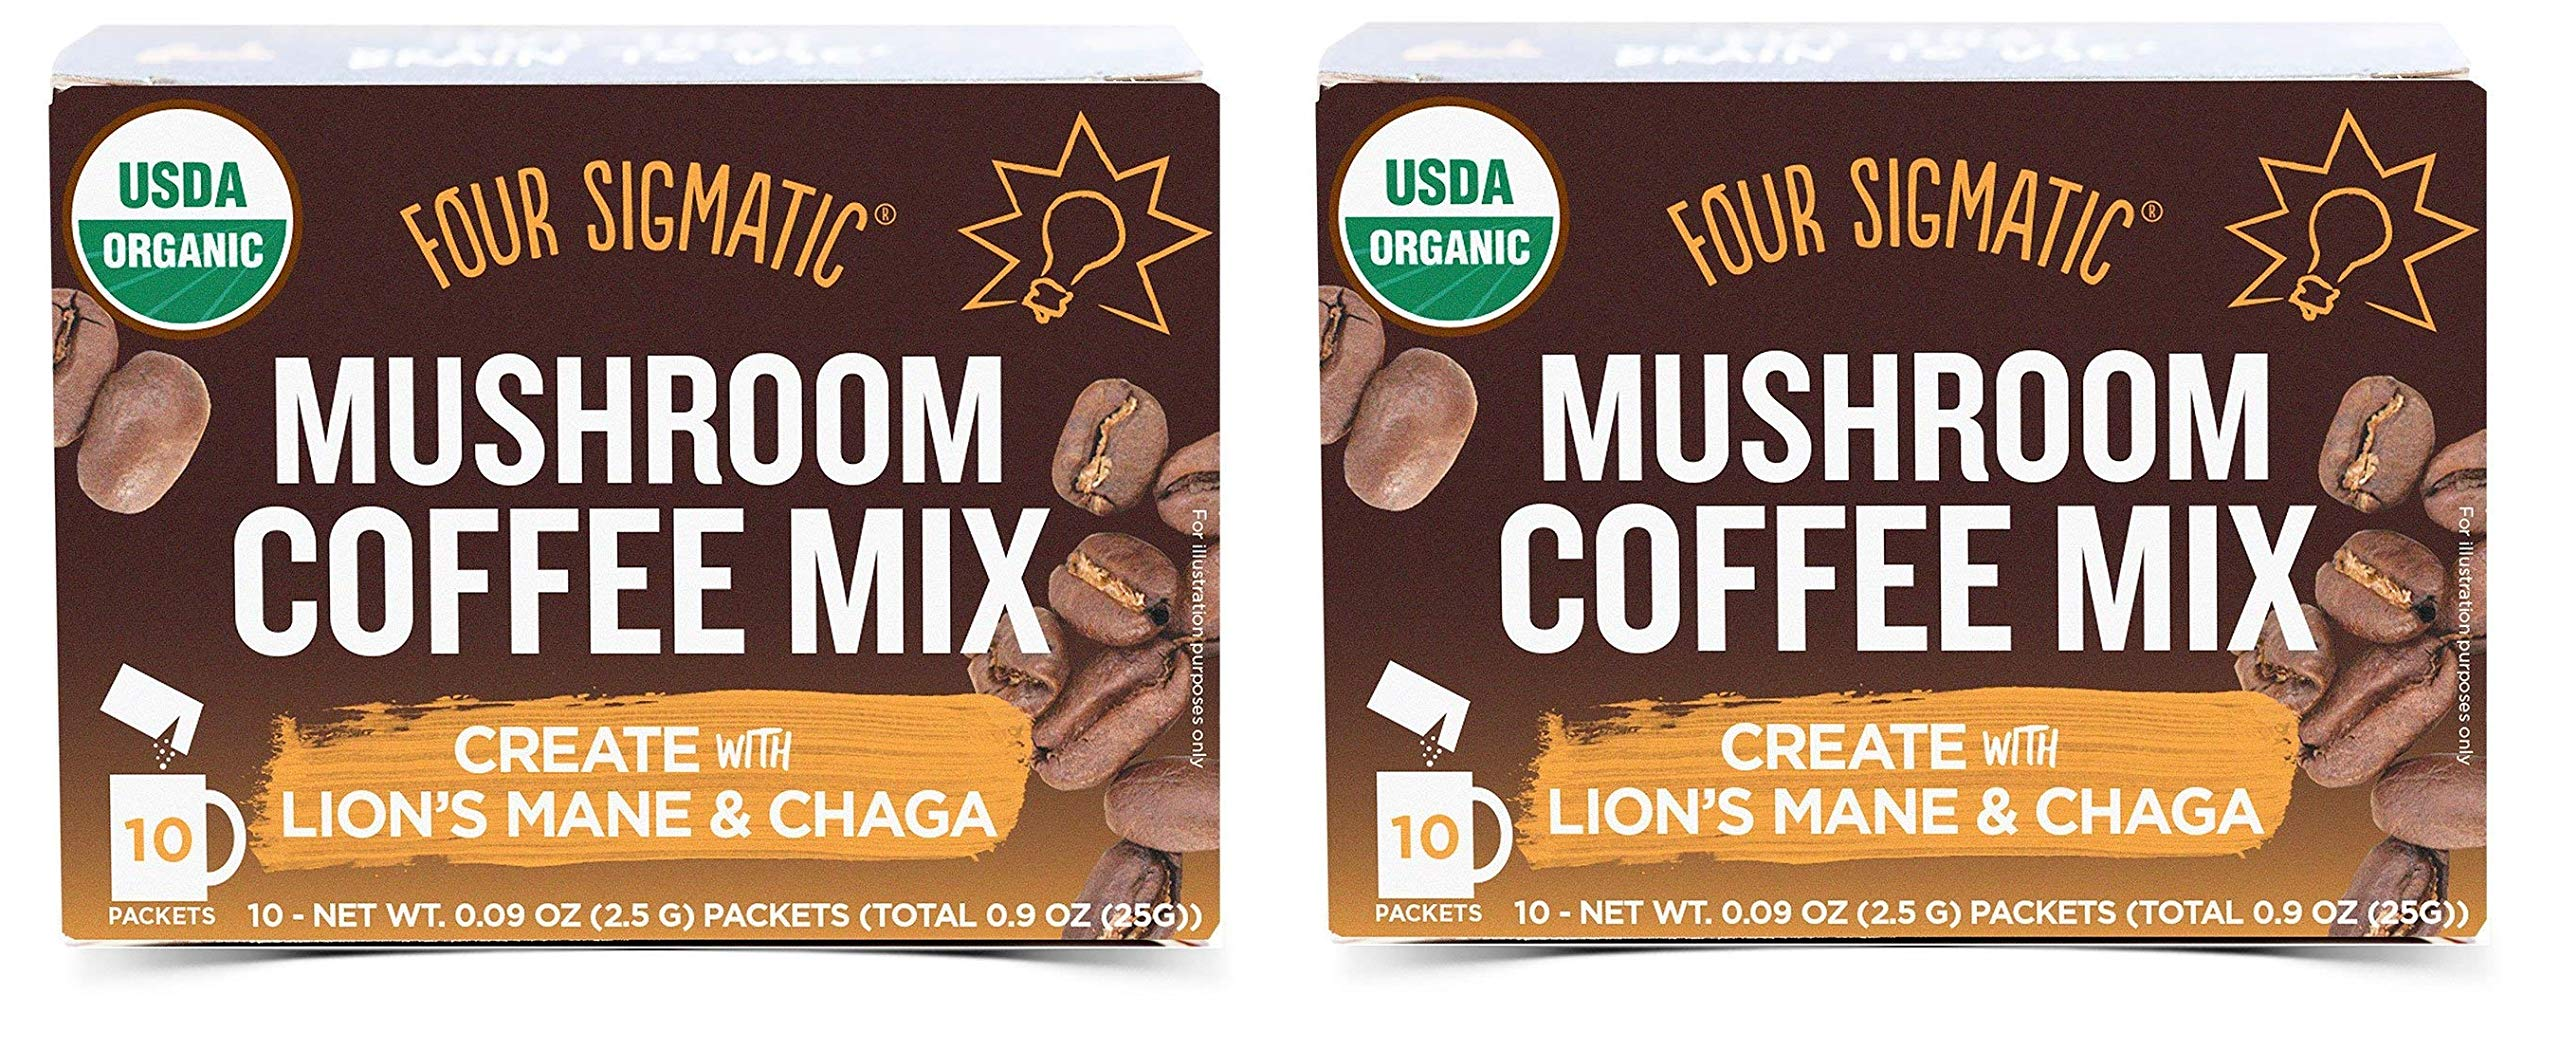 Four Sigmatic Mushroom Coffee, USDA Organic Coffee with Lion's Mane and Chaga mushrooms, Productivity, Vegan, Paleo, 10 Count, Packaging May Vary - PACK-2